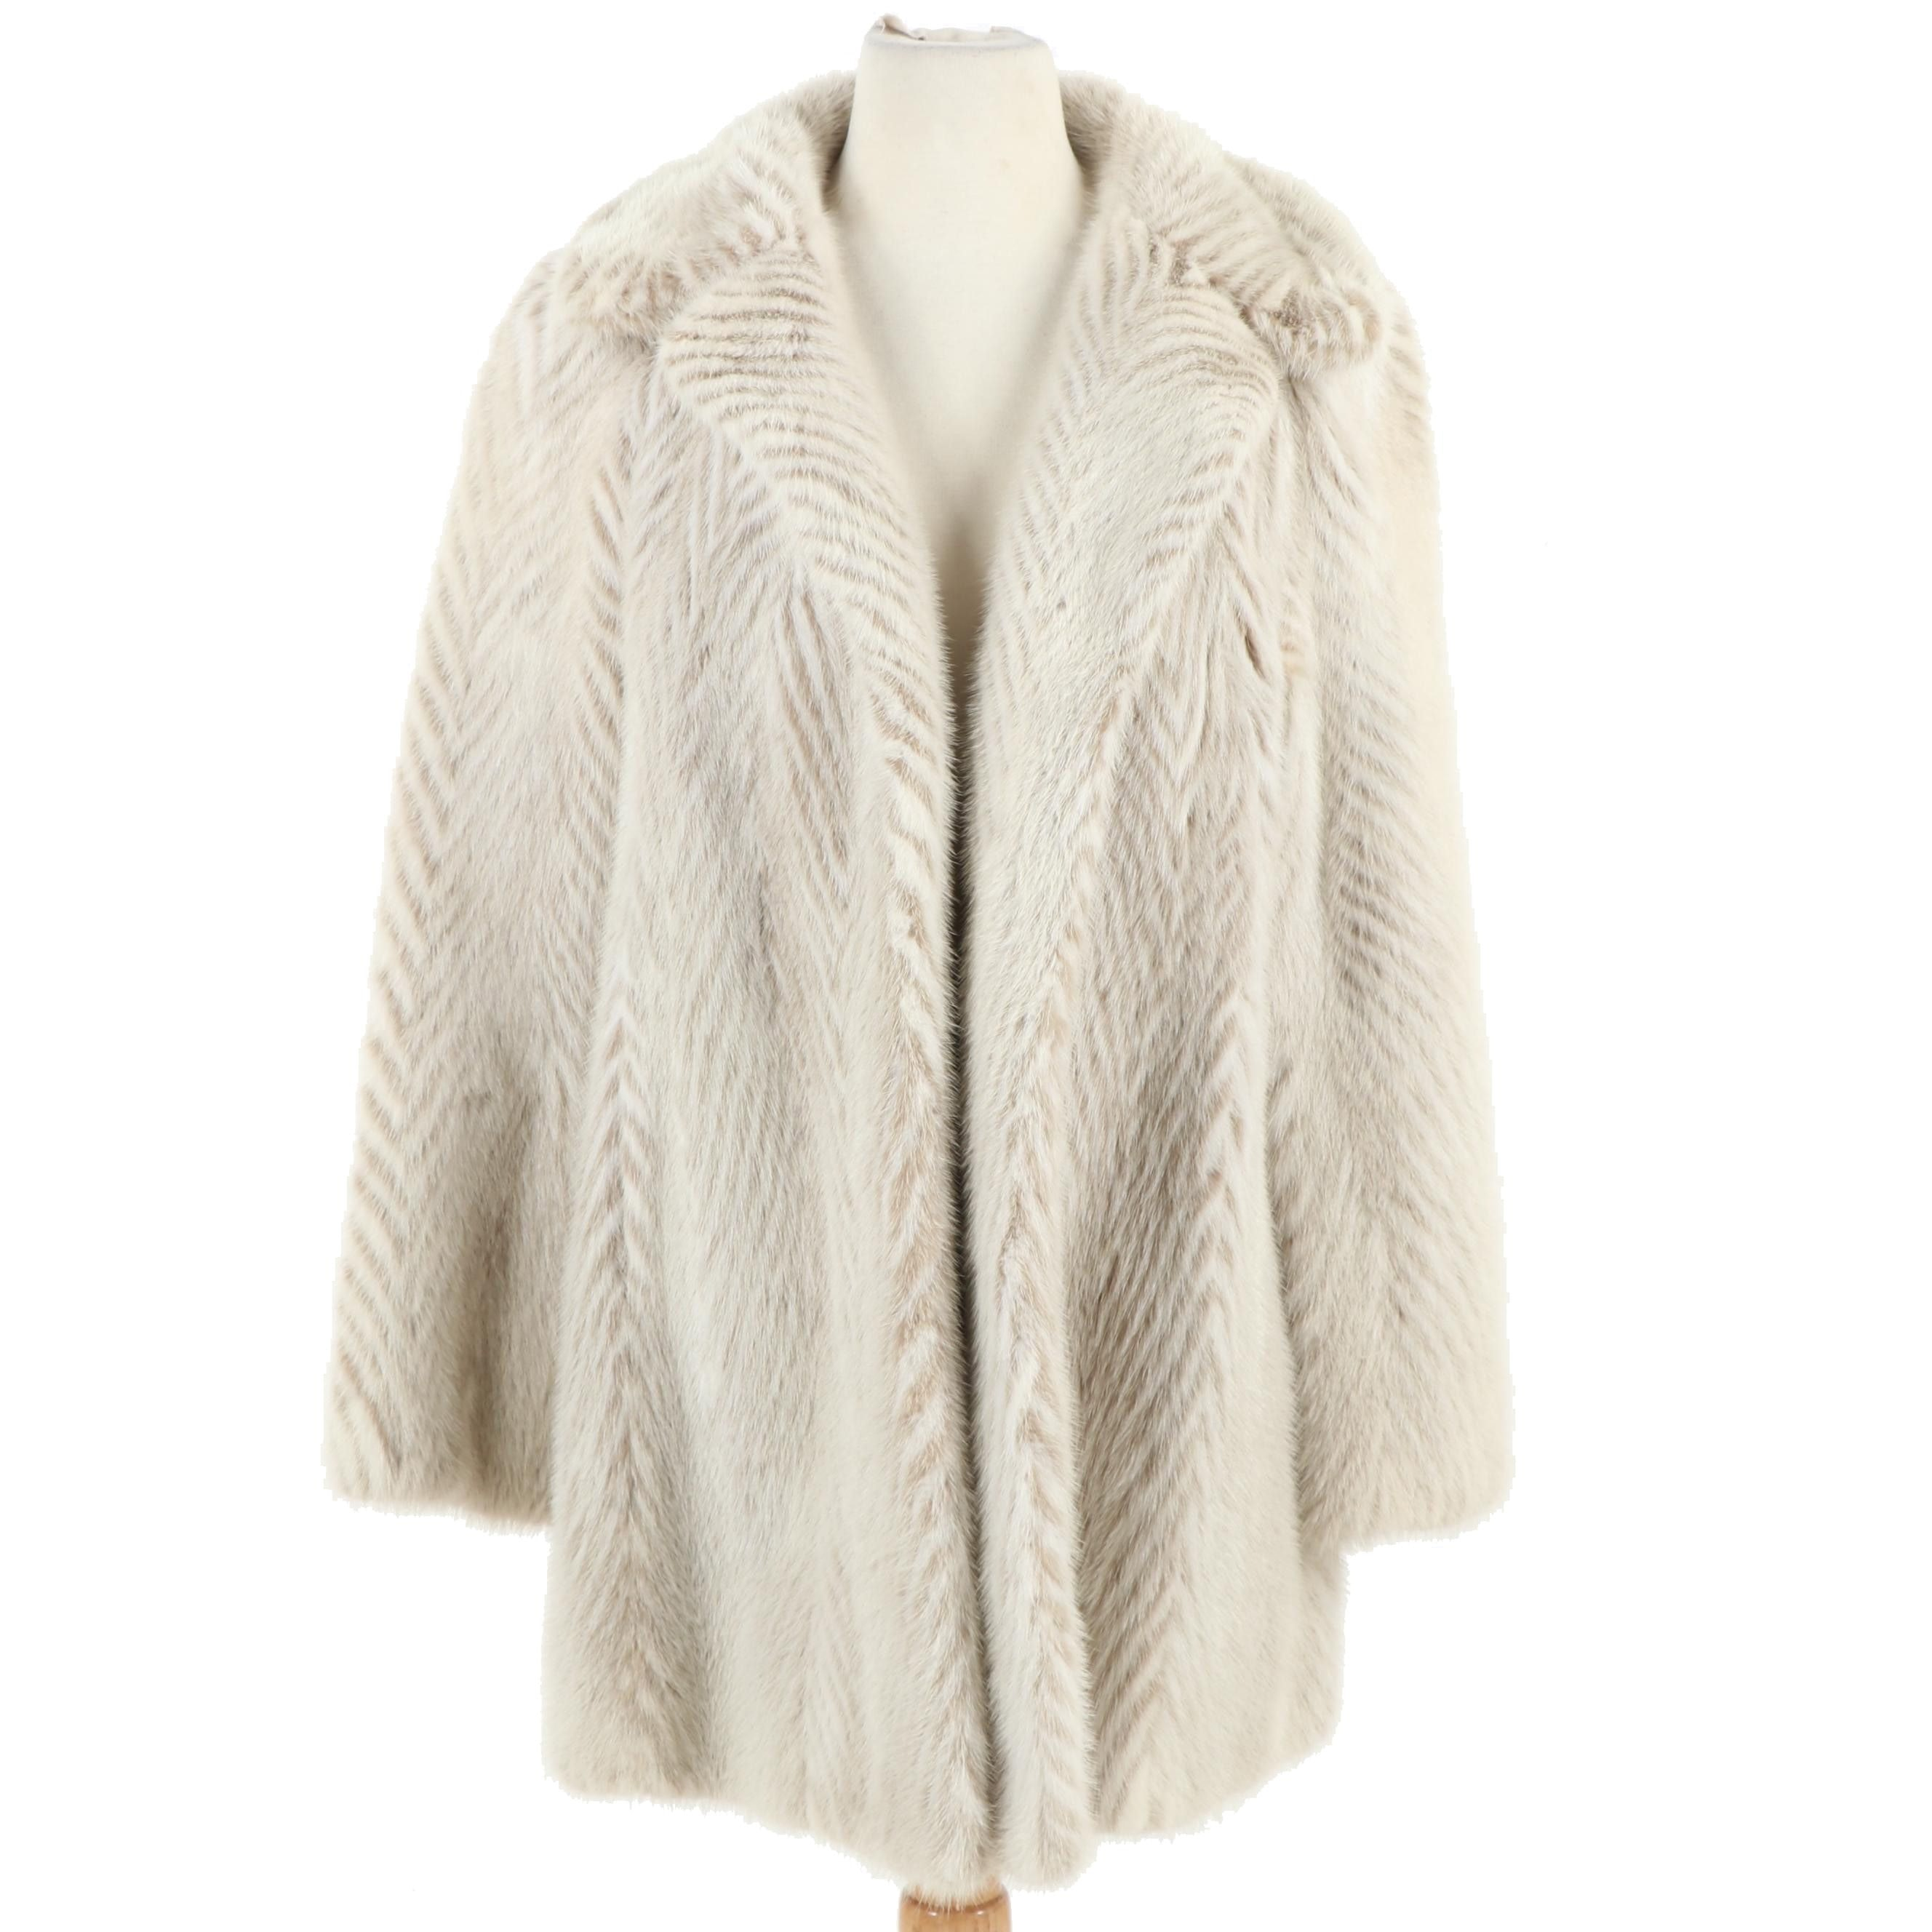 Women's Menger Smart Shops White and Taupe Chevron Pattern Mink Fur Coat